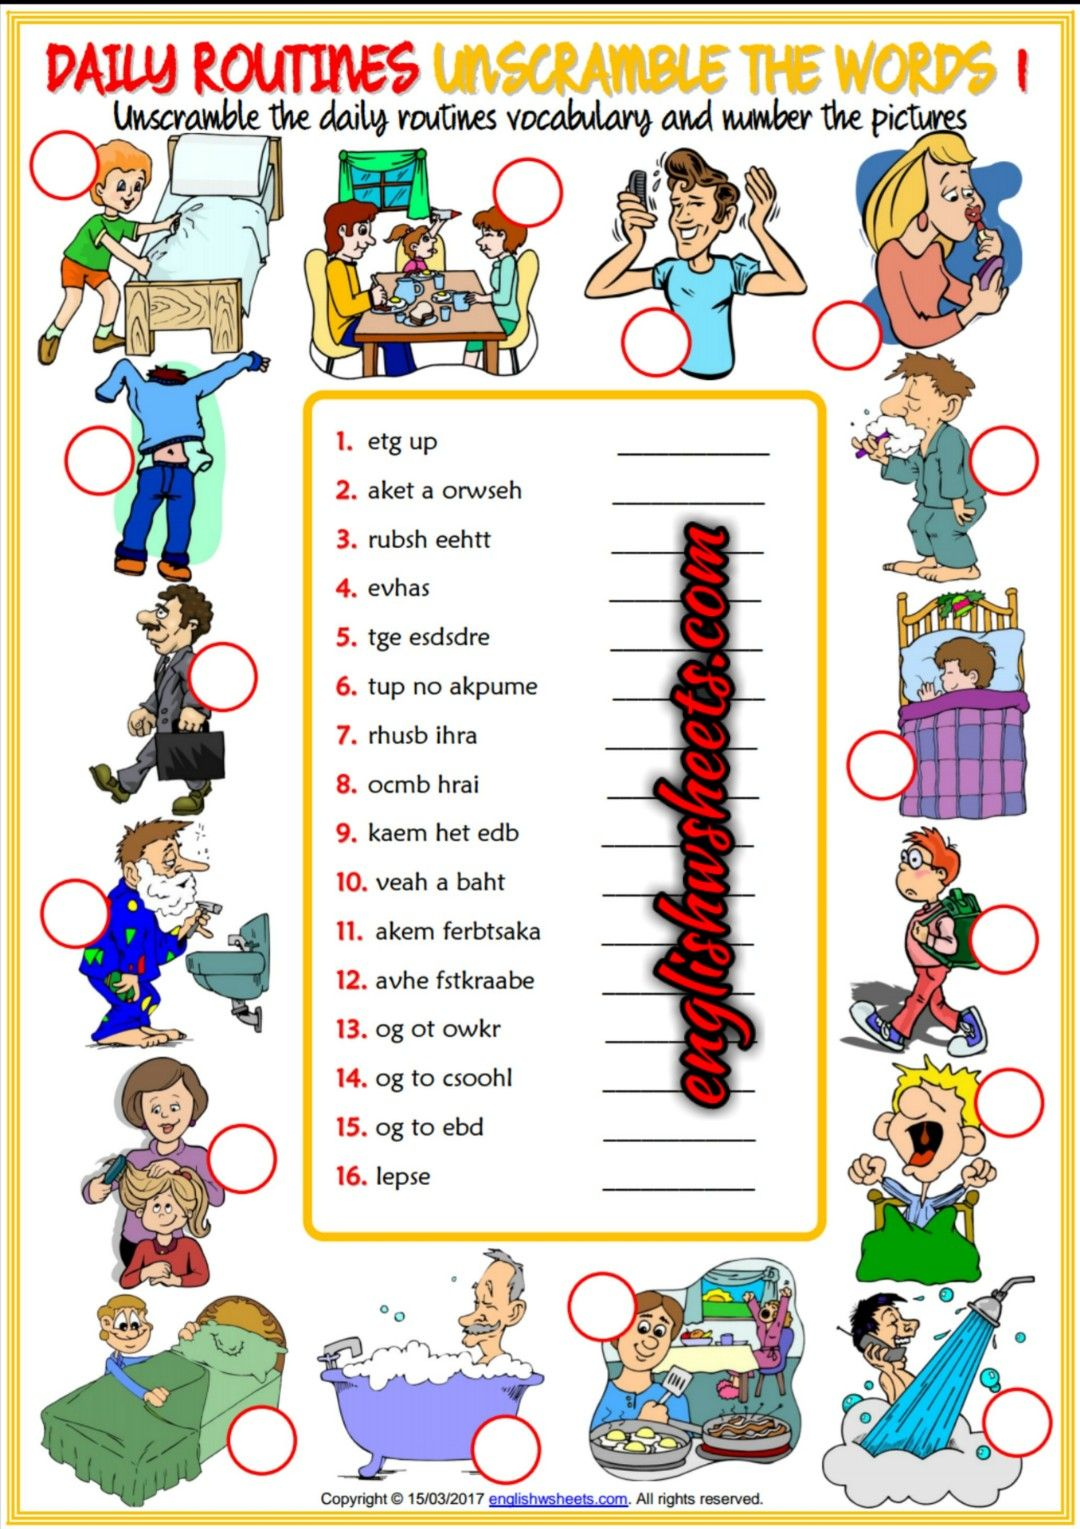 Daily Routines Esl Printable Unscramble The Words